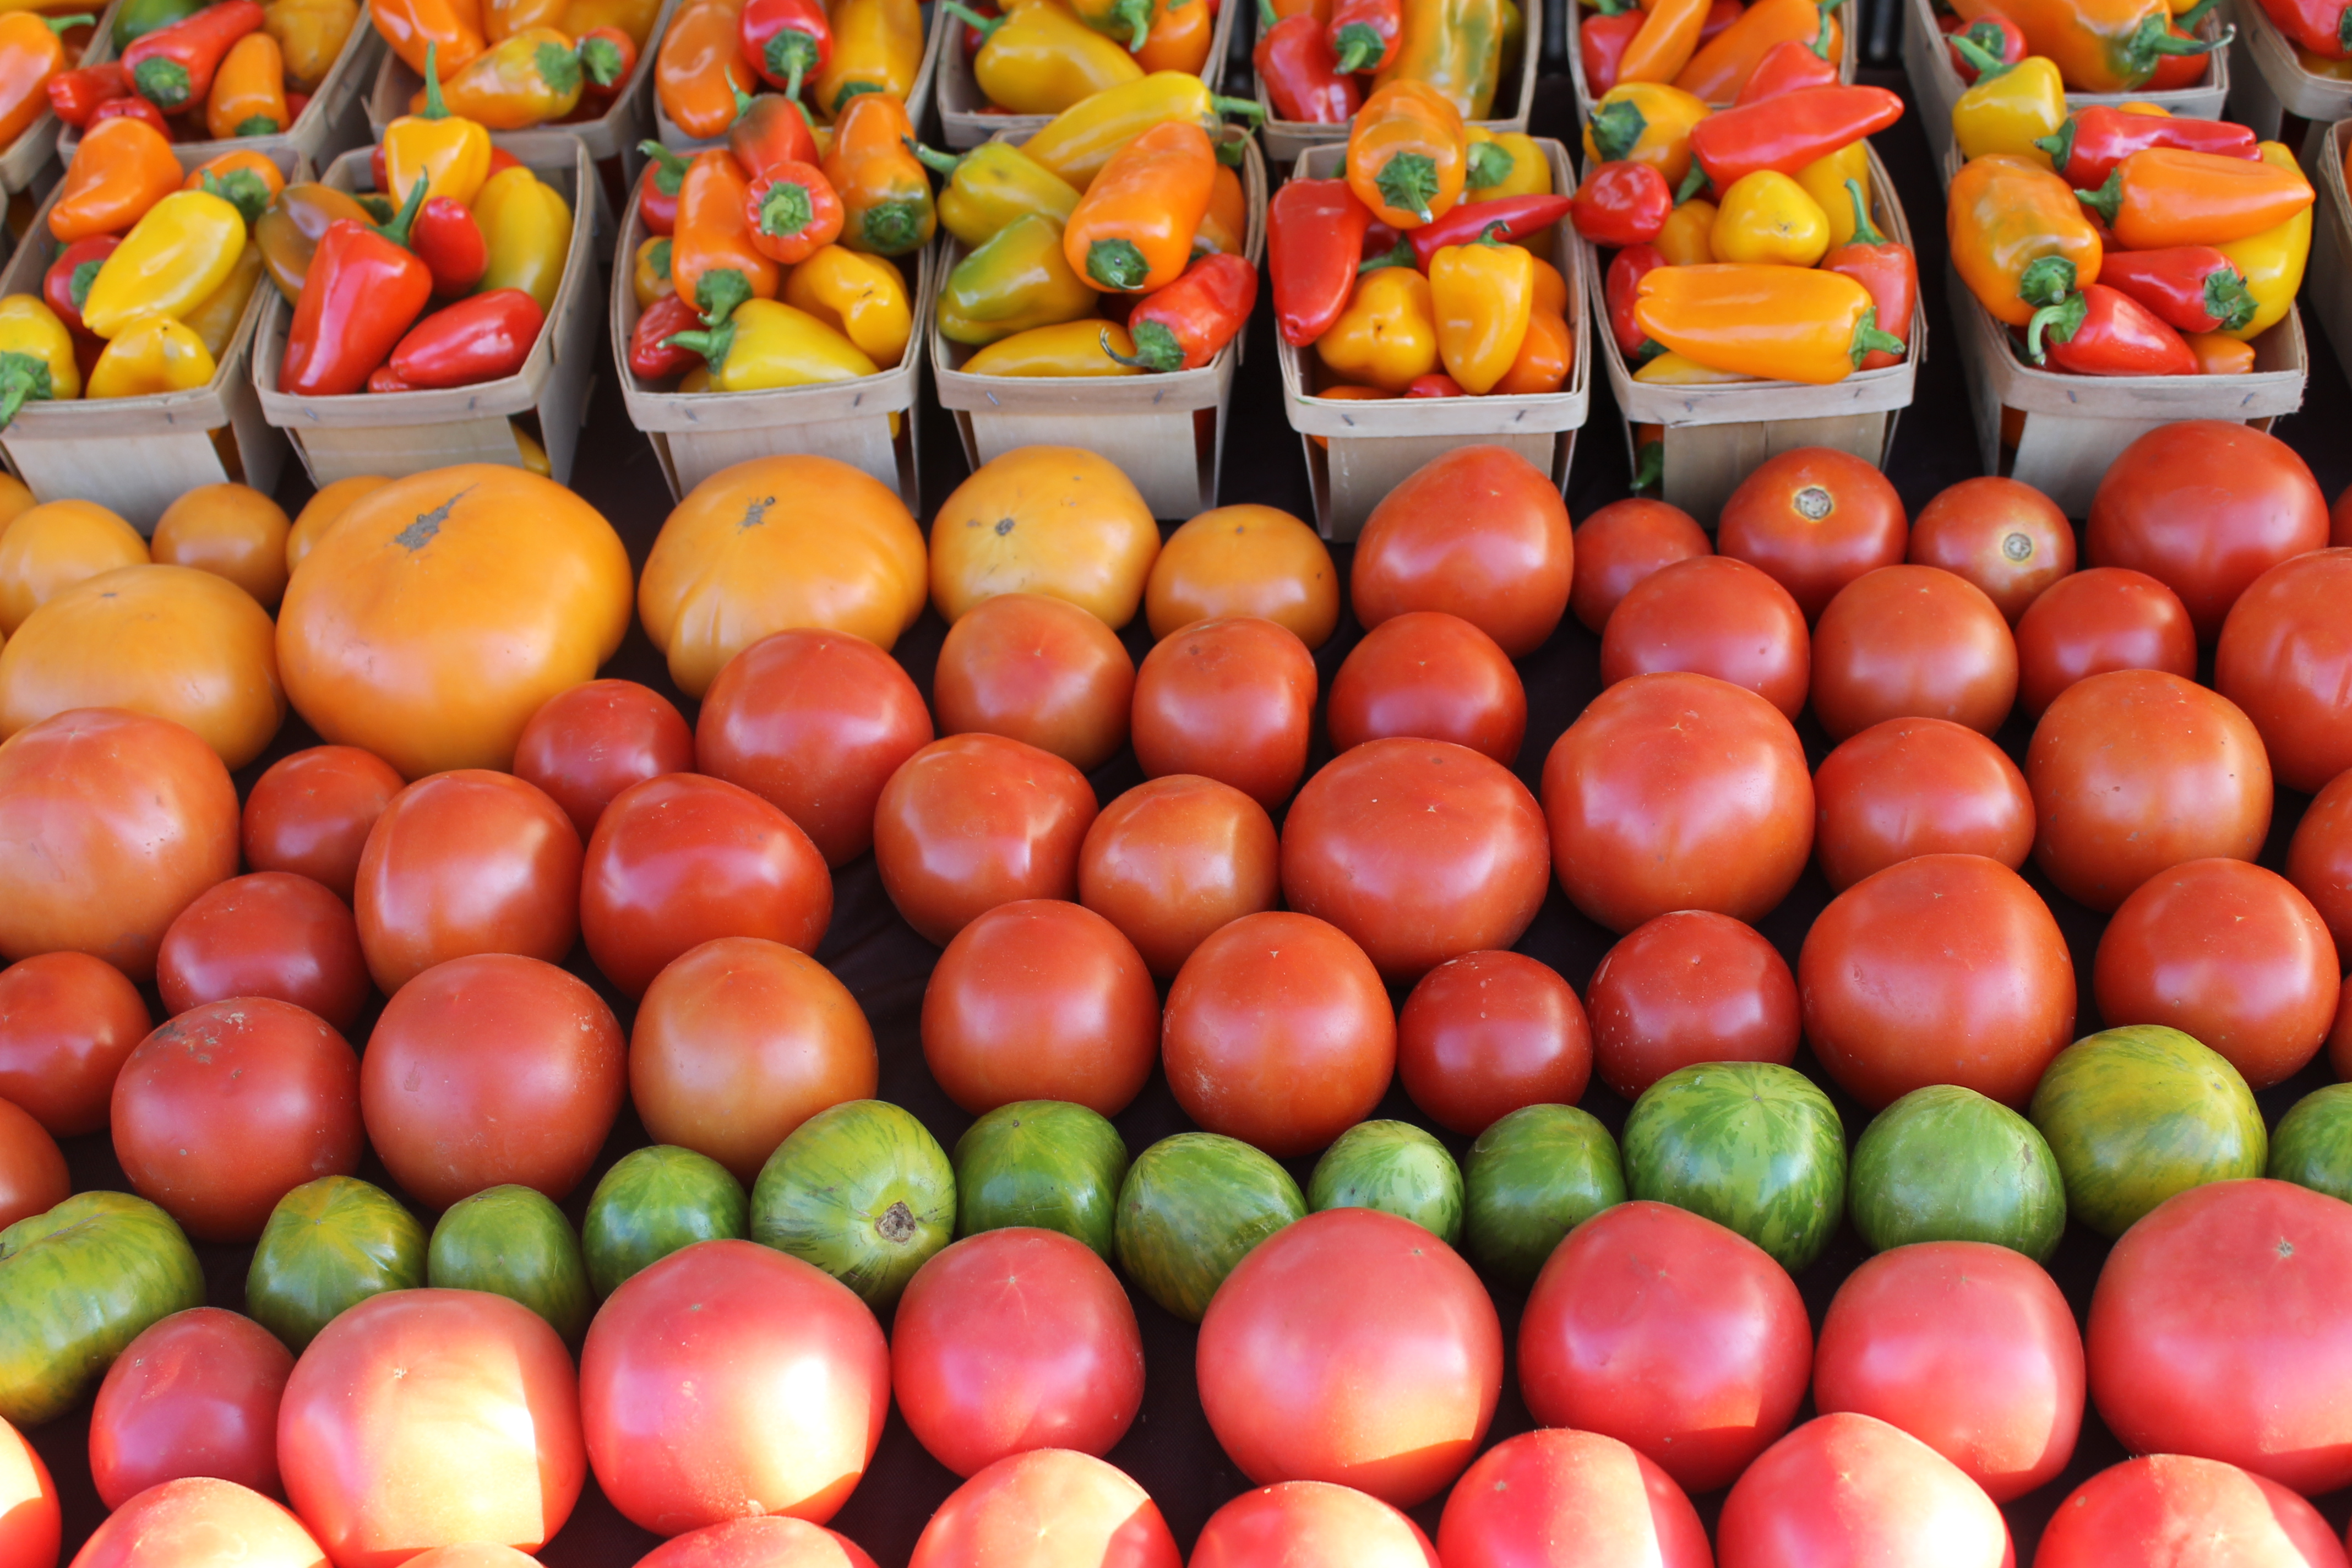 Table filled with ripe tomatoes